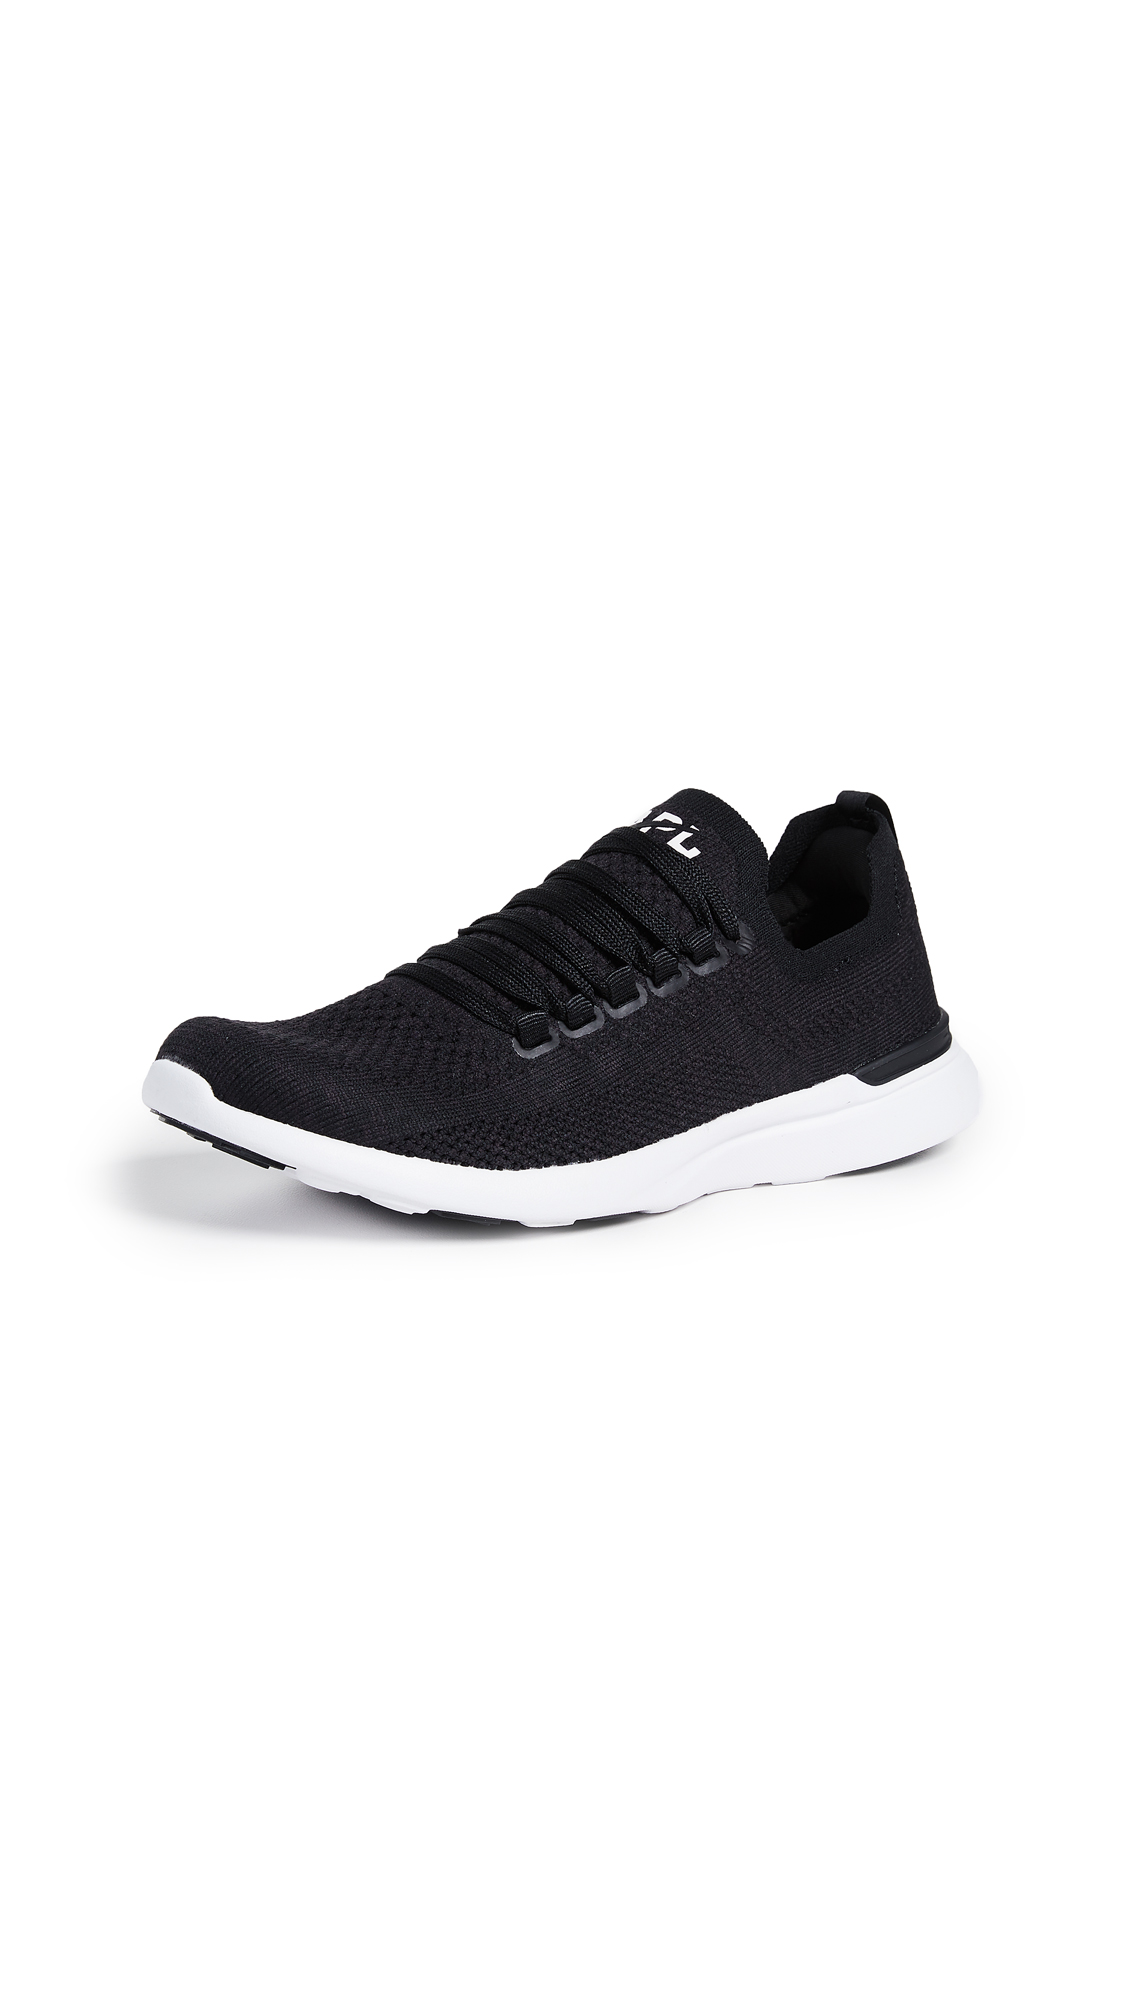 APL: Athletic Propulsion Labs TechLoom Breeze Sneakers - Black/Black/White